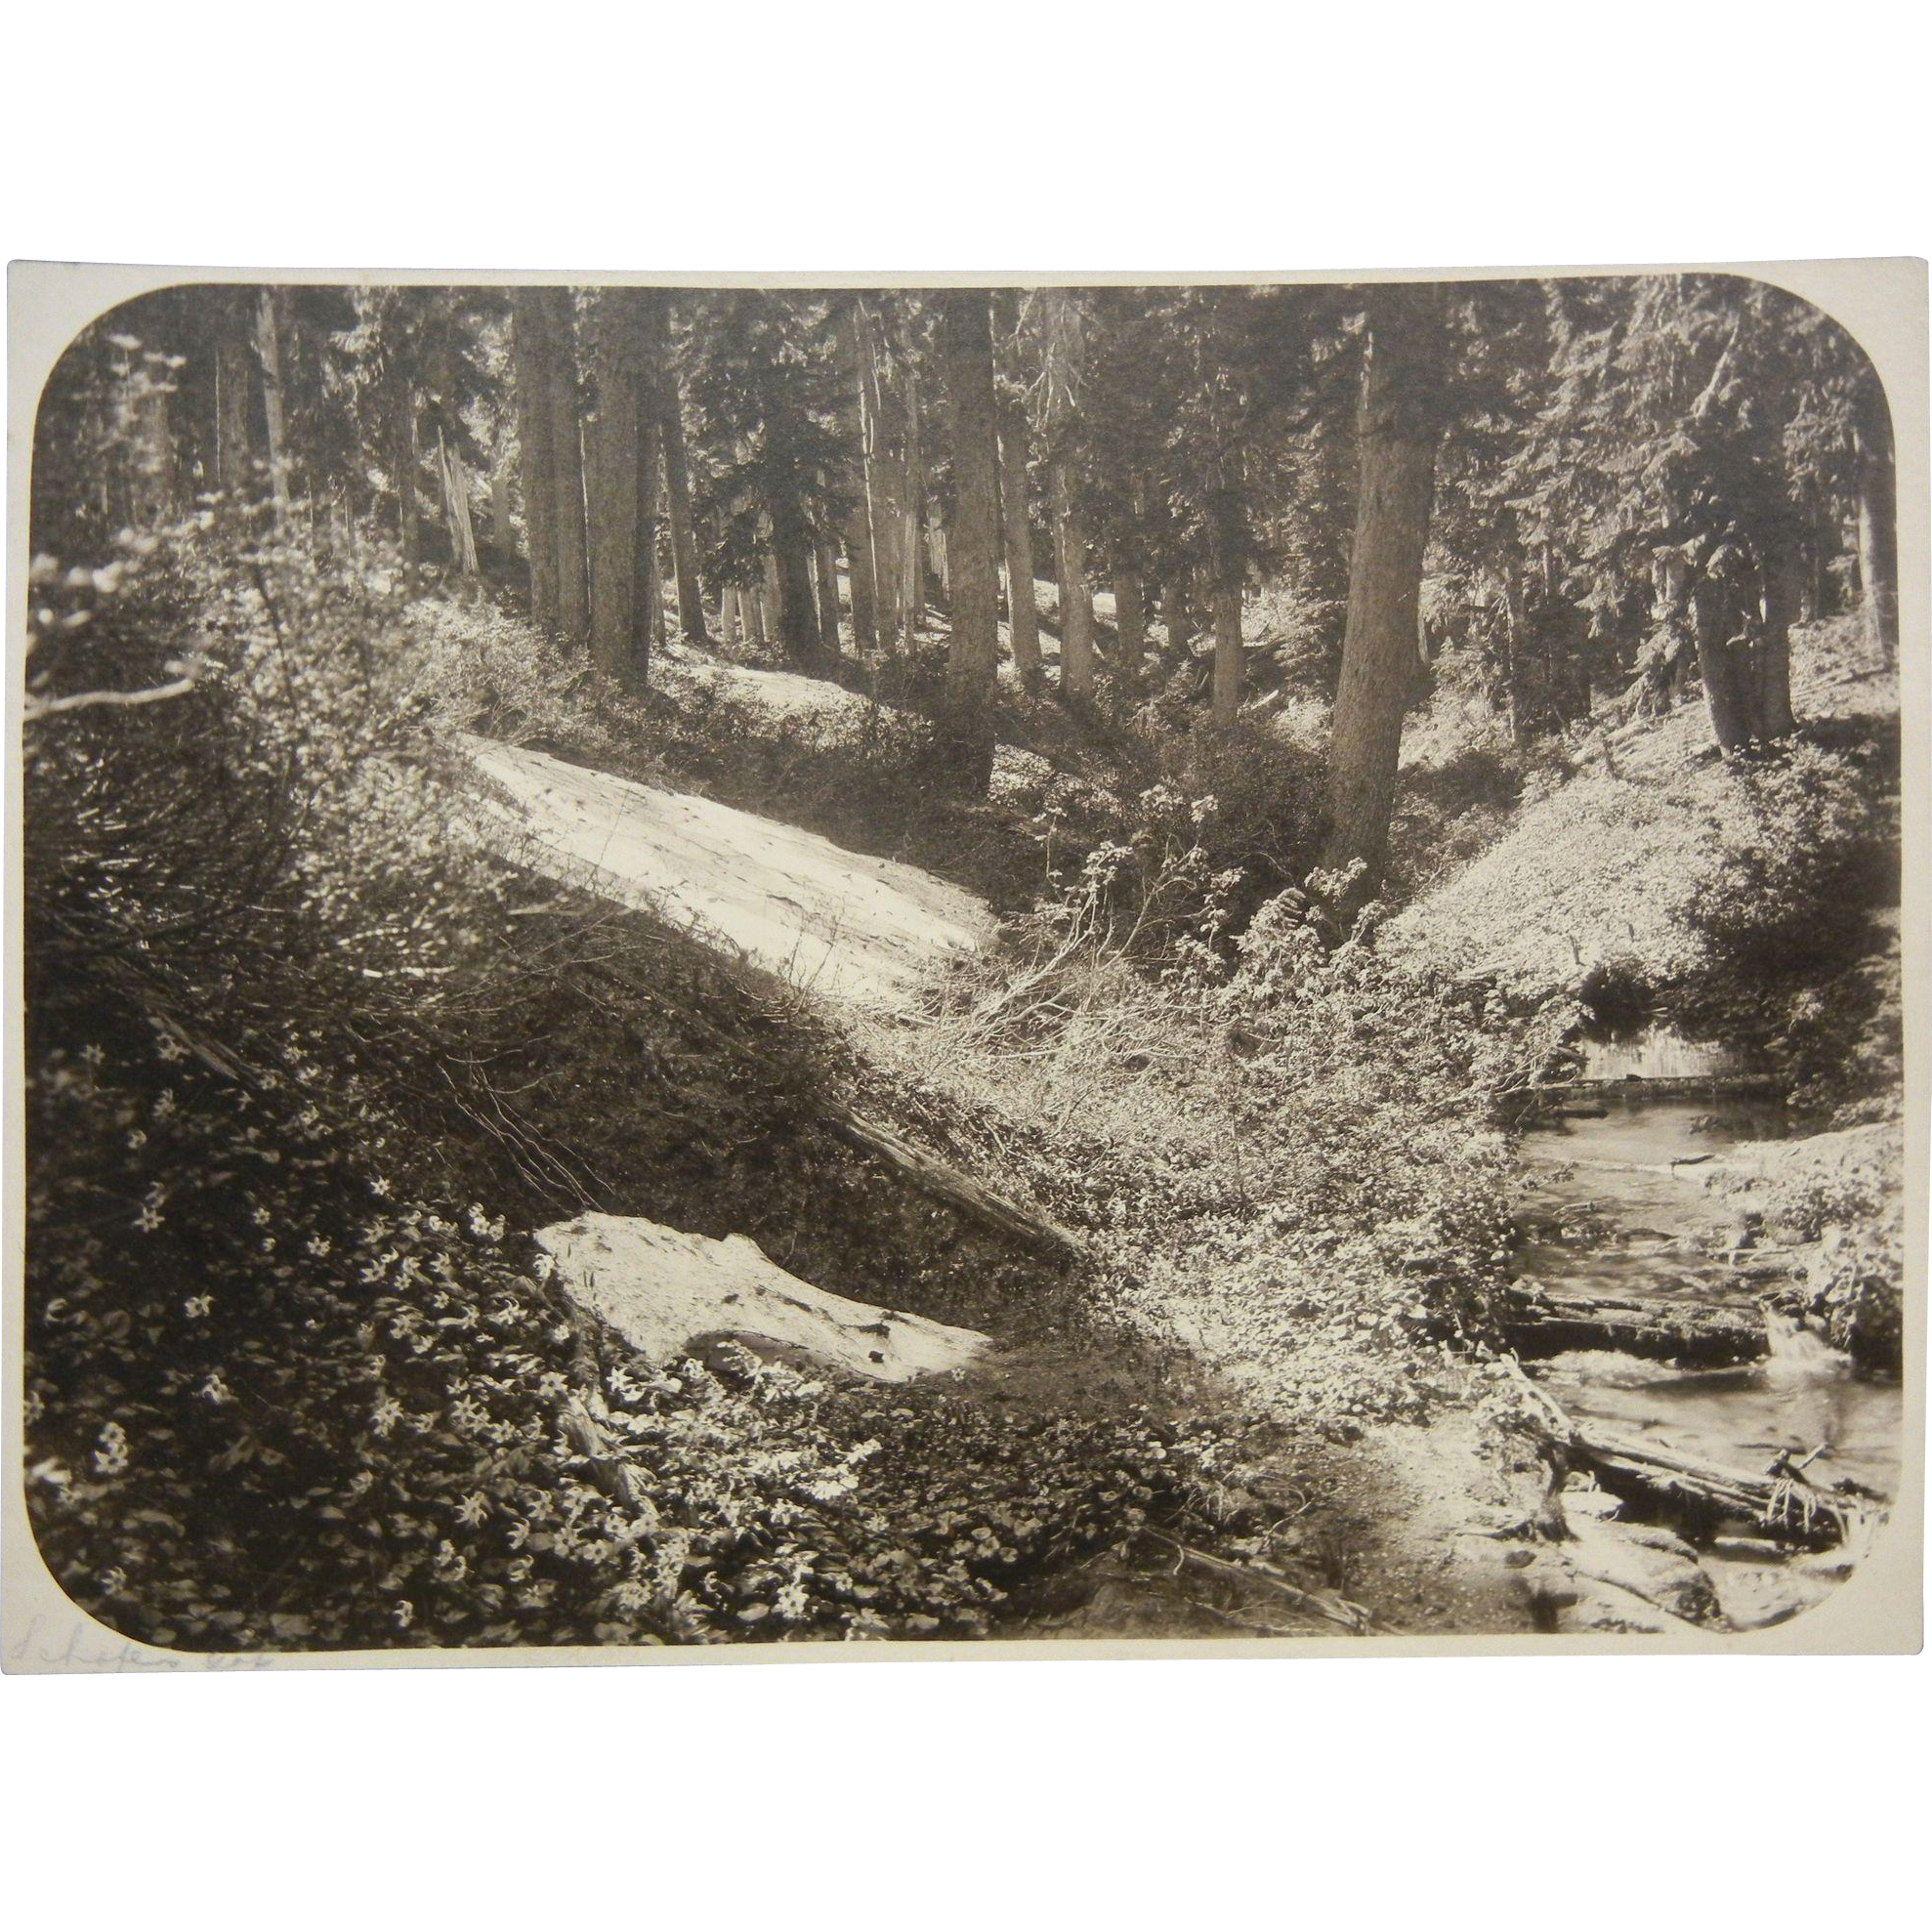 Vintage Original B&W Nature Photograph Signed Schafers Gap Washinton State